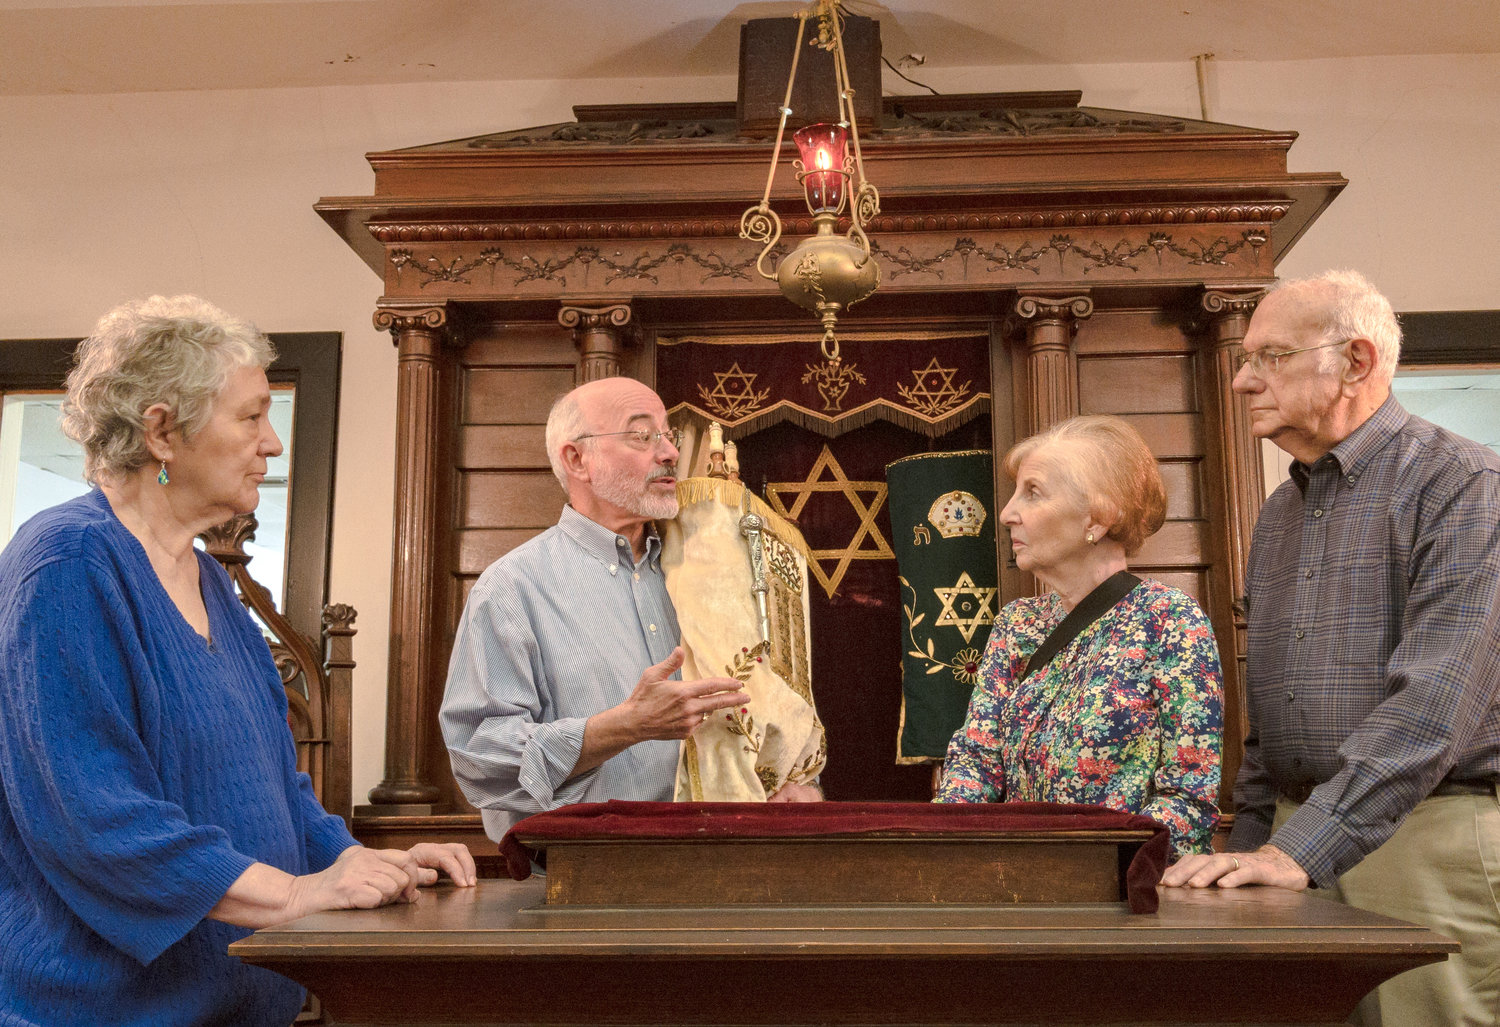 Temple Mishkan Israel in Selma, Ala., and its four members (from left) Hanna Berger, Ronnie Leet, Joanie Gibian Looney and Charles Pollack, in front of the Torah ark.